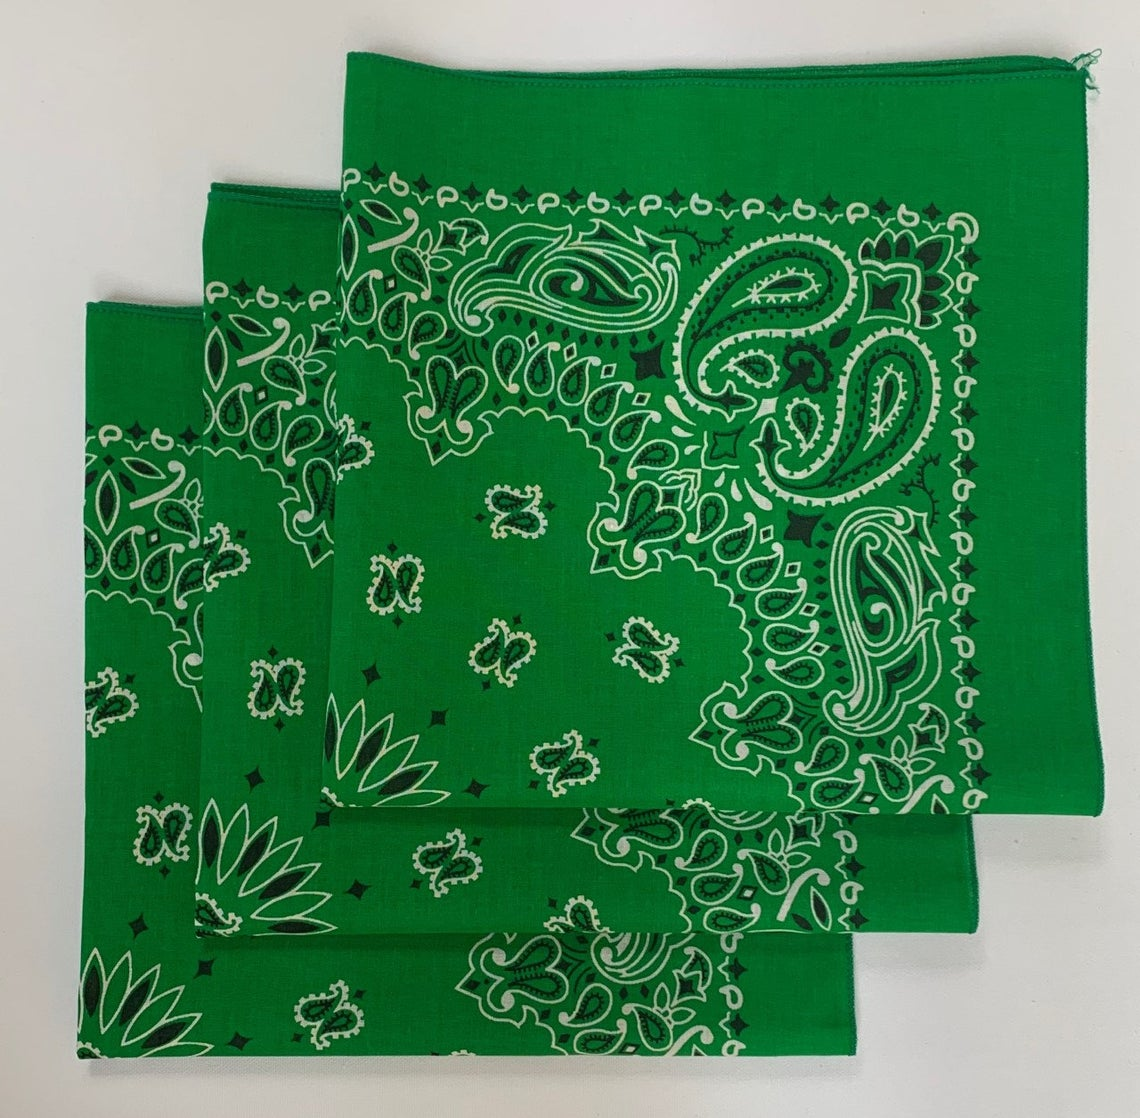 "Kelly Green Paisley Bandanas - Made In The USA (3 Pk) 22"" x 22""a"